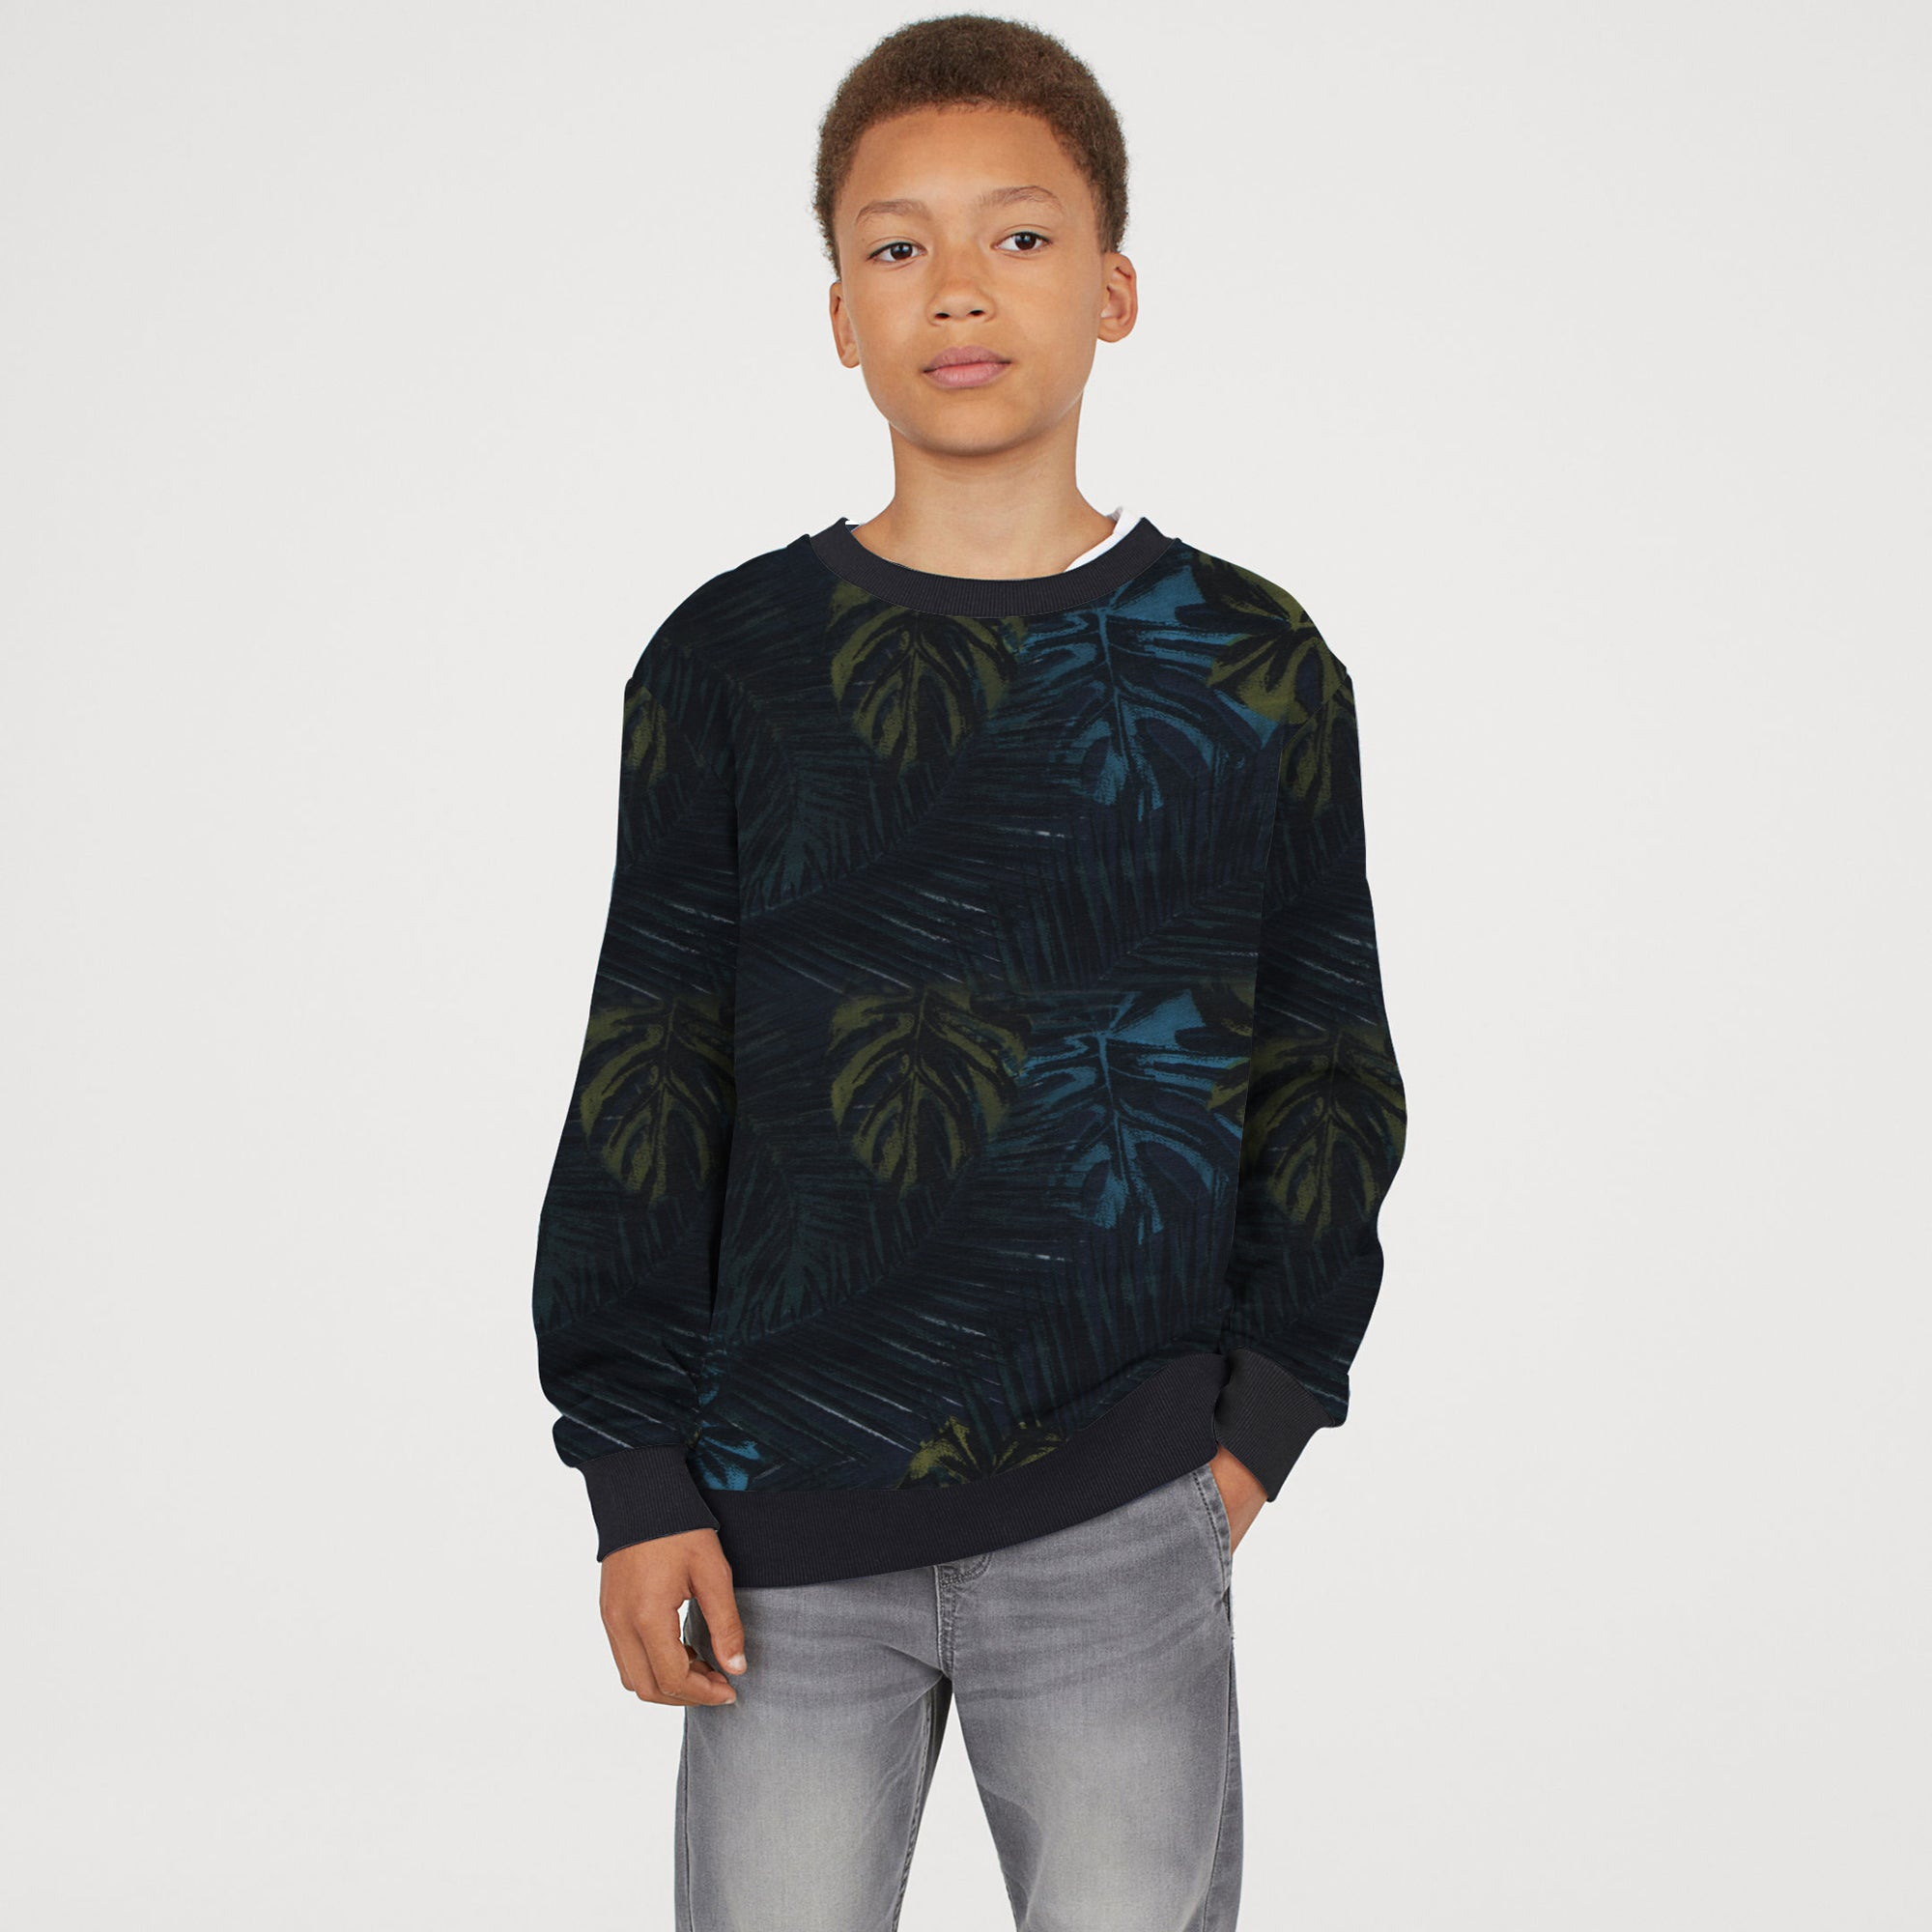 TH Terry Fleece Crew Neck Sweatshirt For Kids-Allover Print-SP764